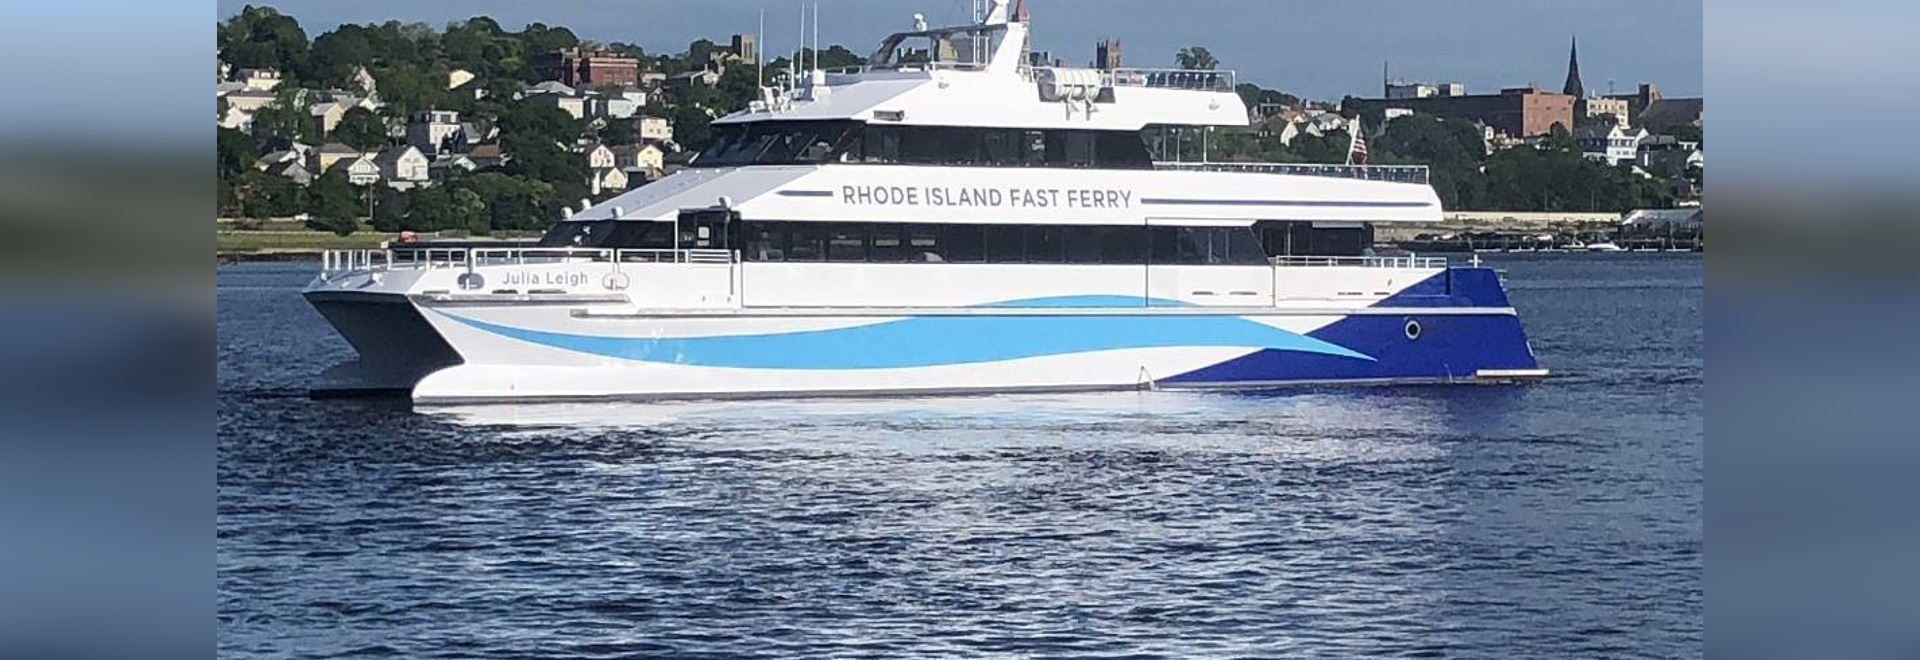 New fast ferry for Rhode Island. Gladding-Hearn photo